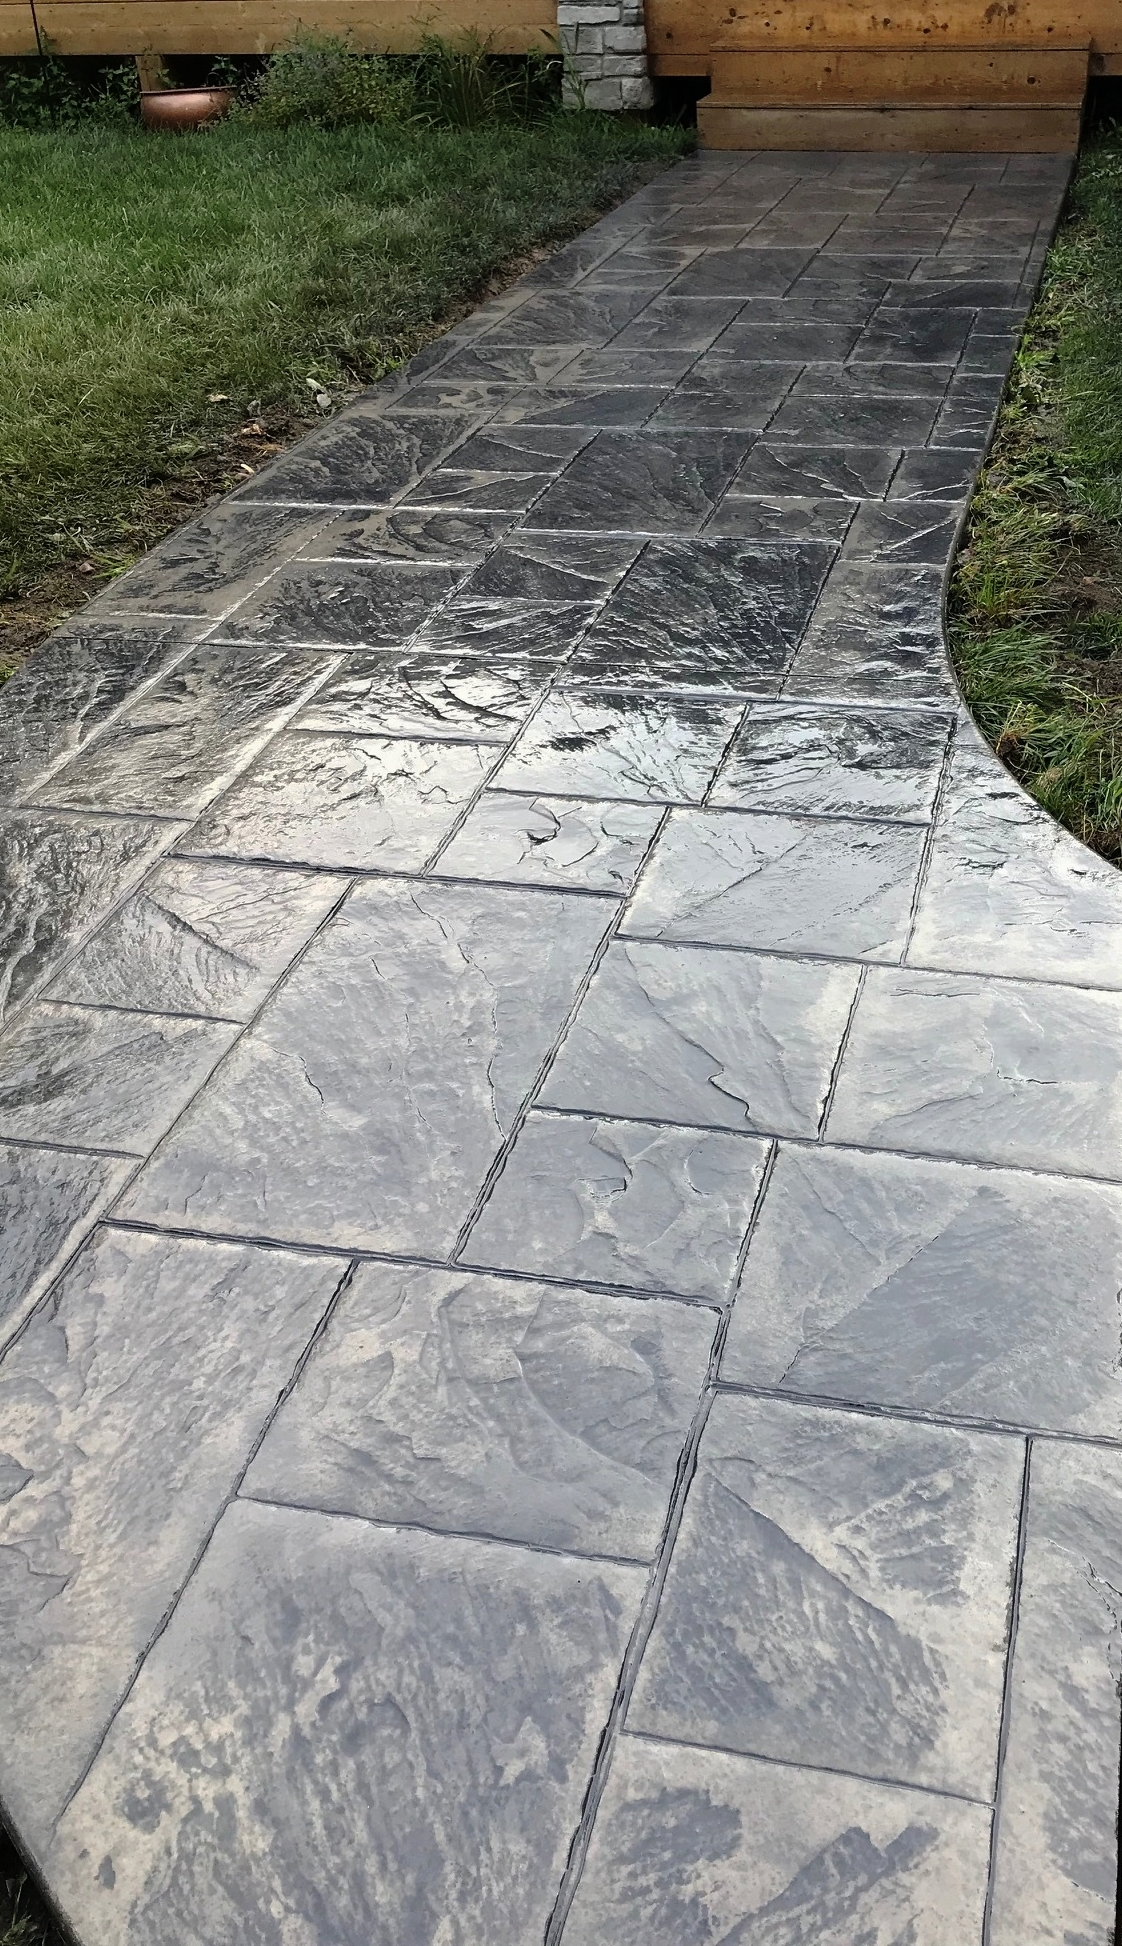 Another beautiful sidewalk installed by J & S - This sidewalk was stamped using our Large Ashler Slate stamps and colored with Deep Charcoal accents. To see more designs like this, visit our website jsgeneralcontracting.com